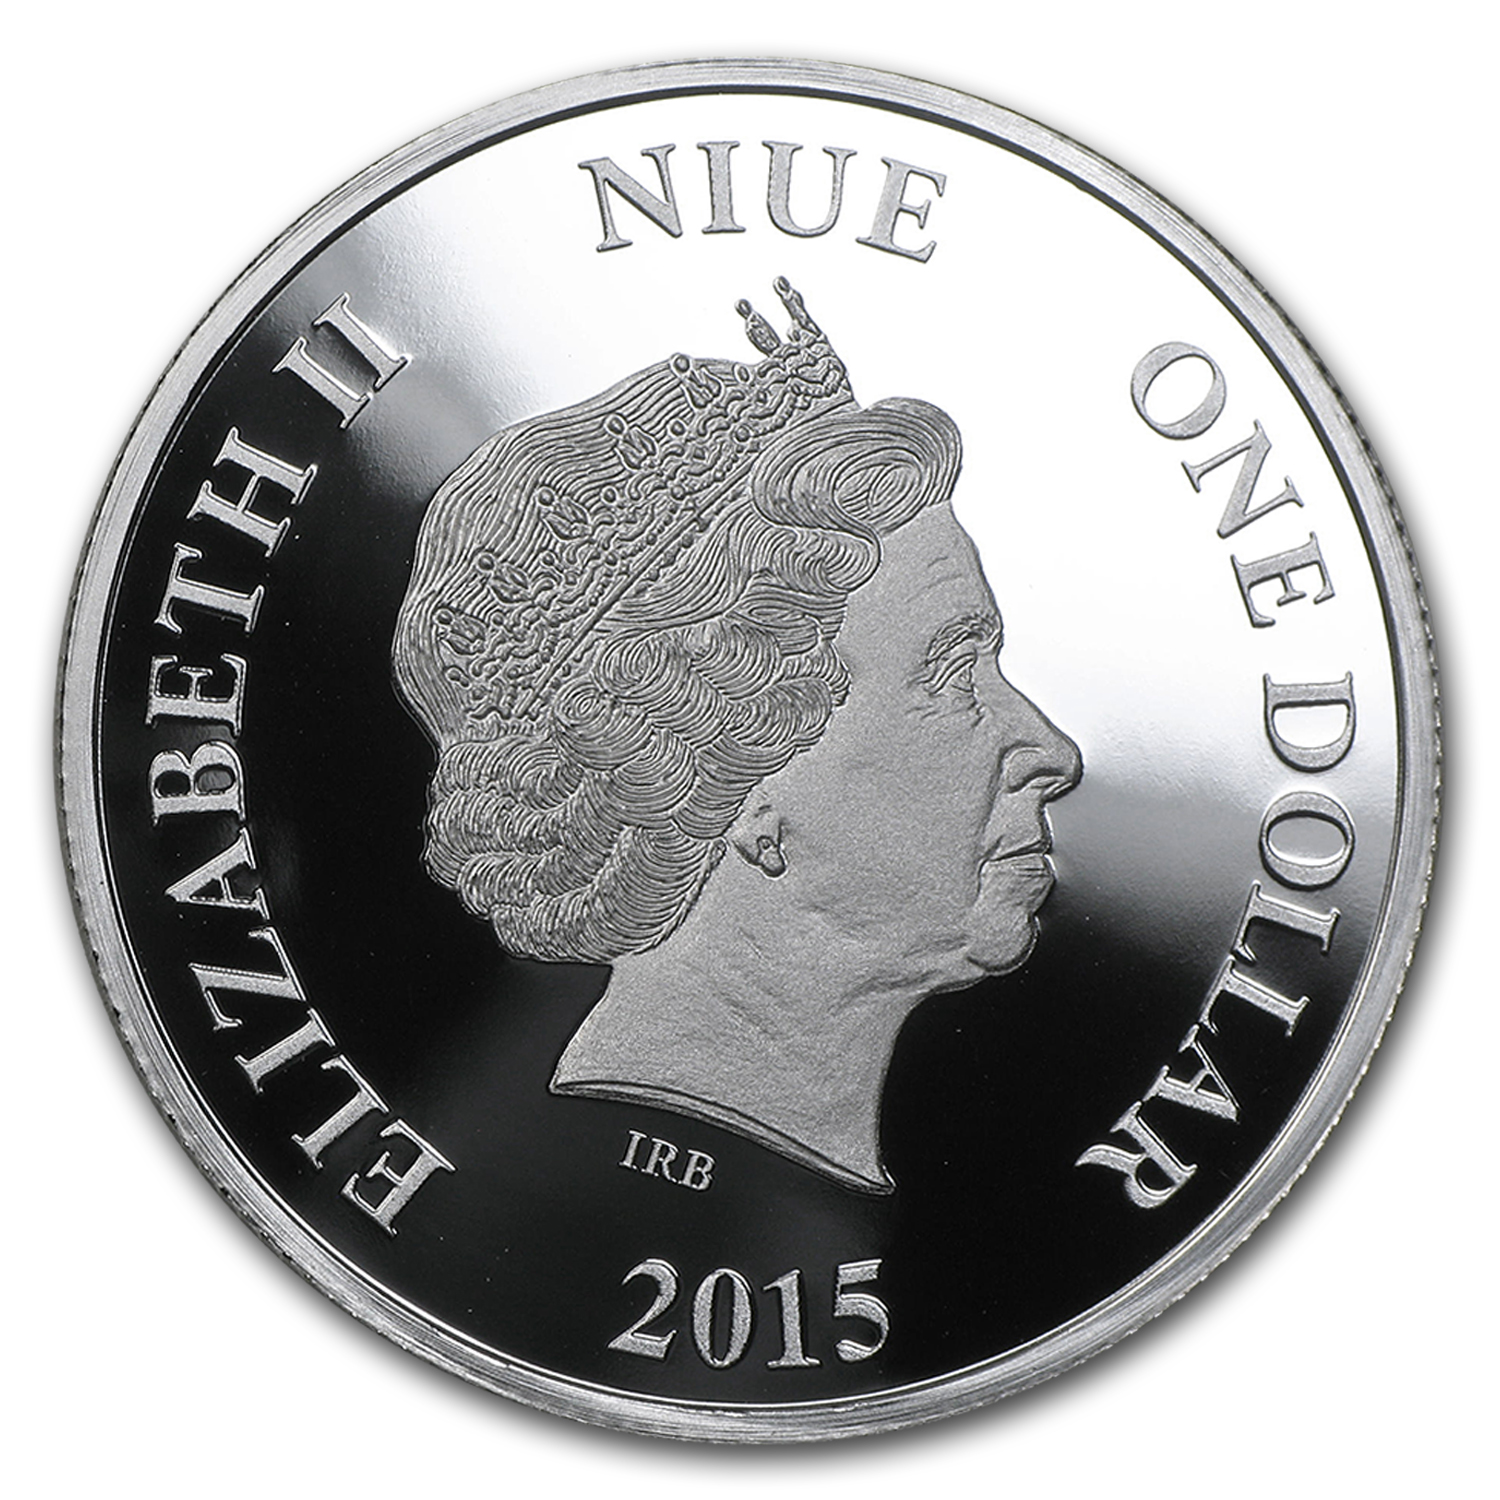 2015 Niue 1 oz Silver $1 Mirror Mirror on the Wall Proof